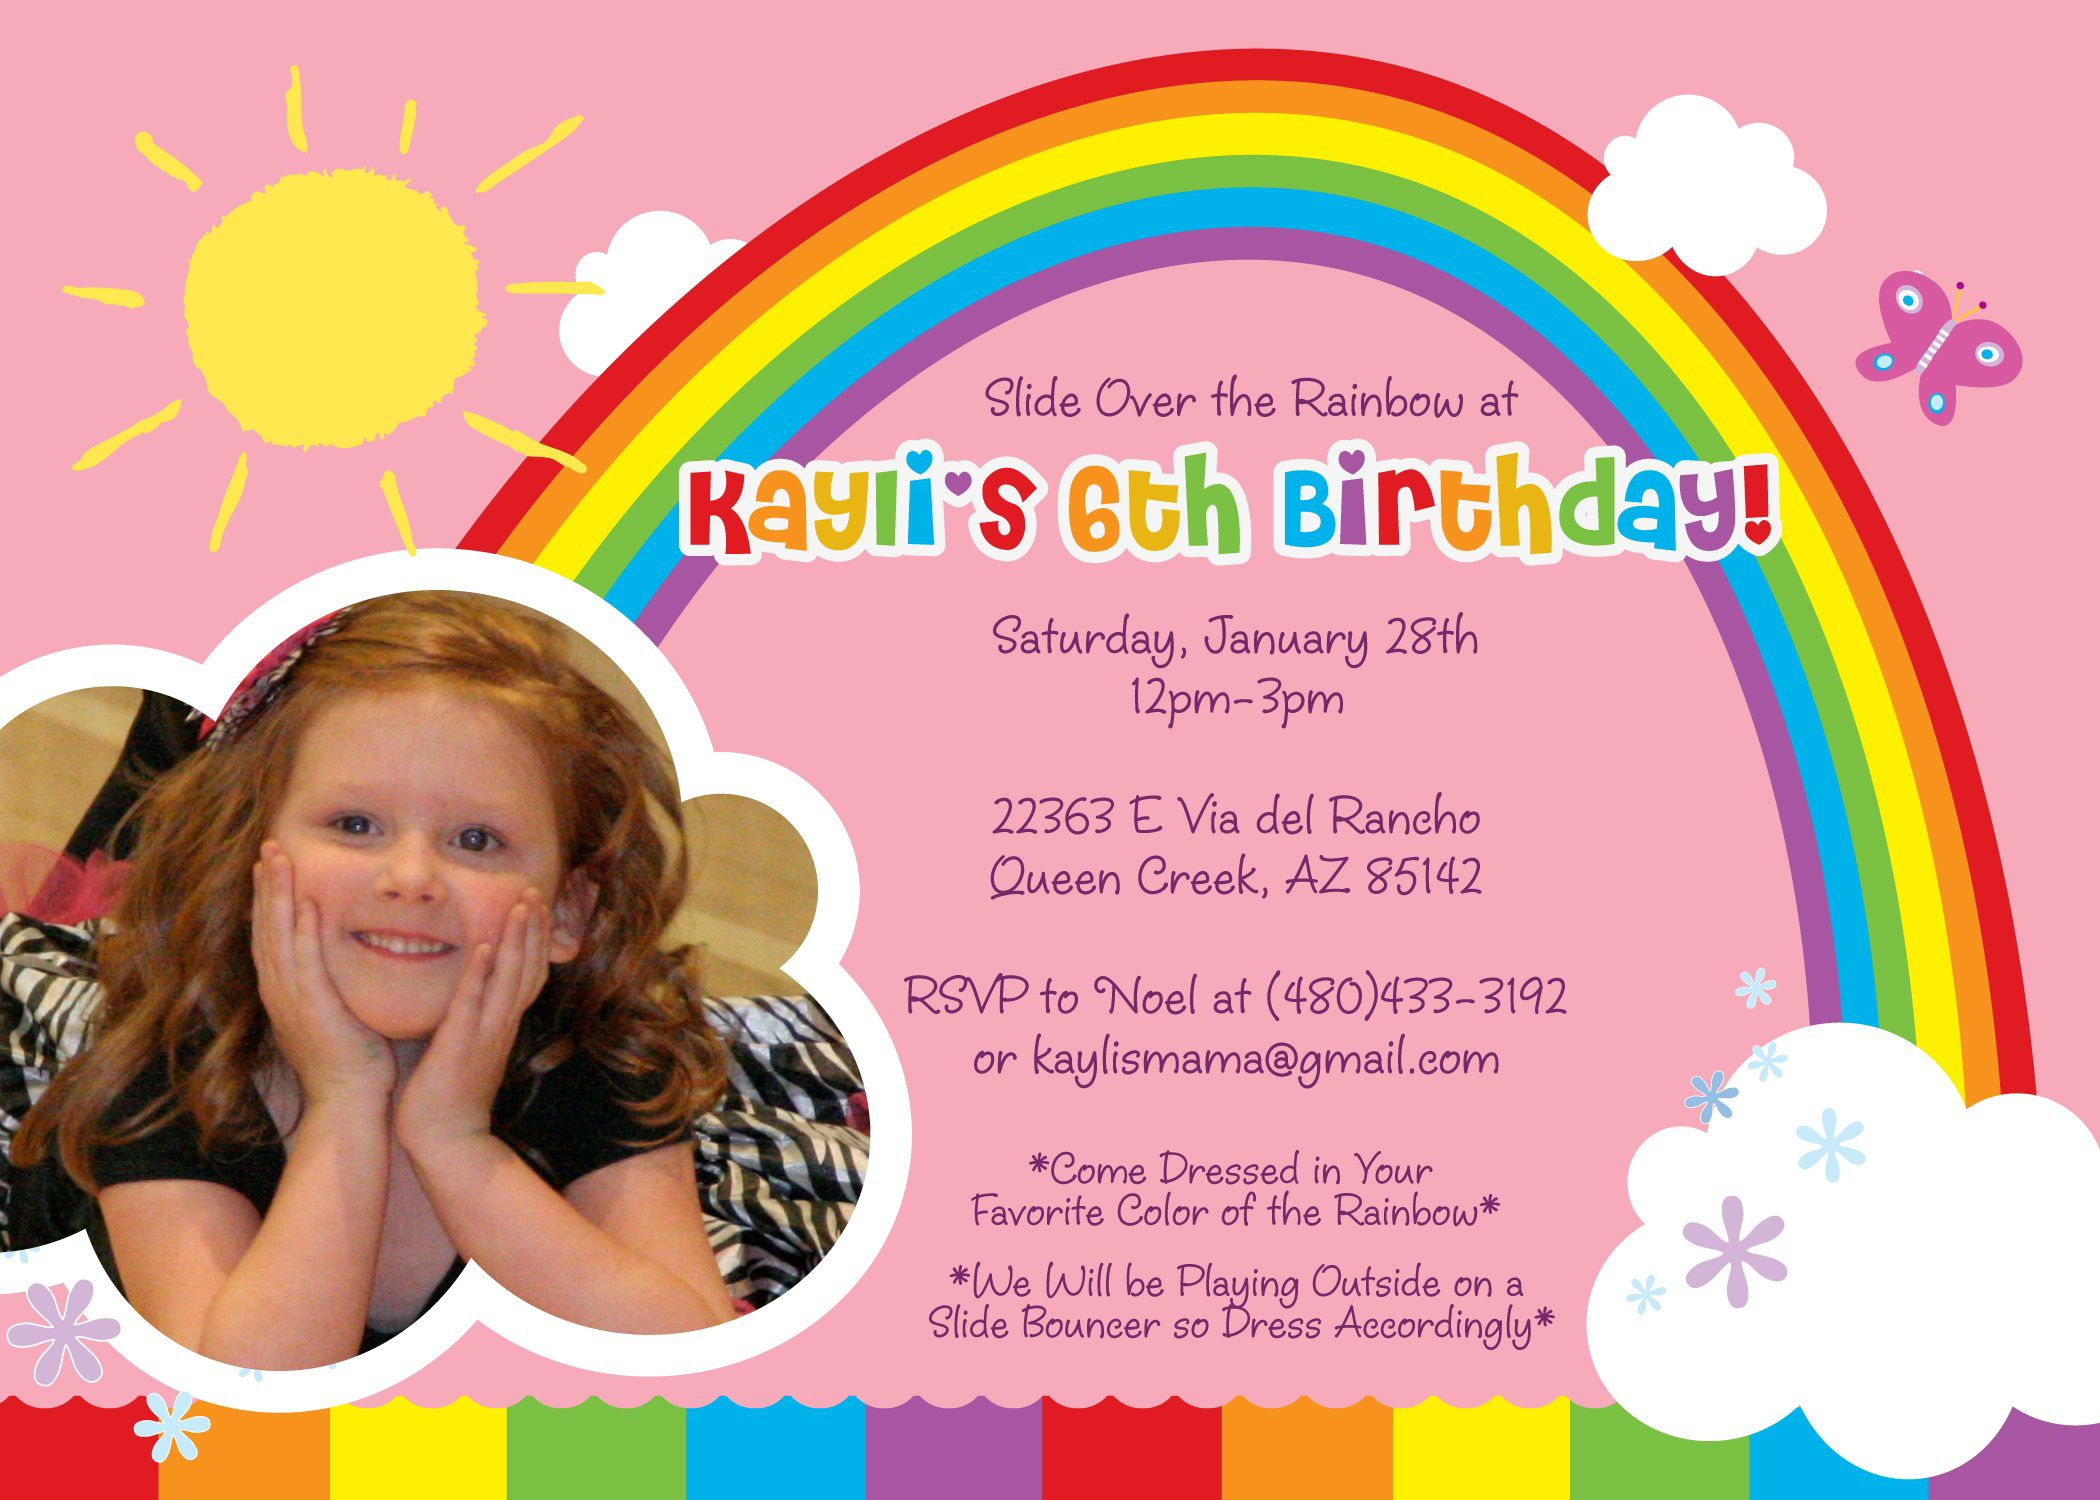 Birthday party invitation template quotes invitation templates birthday party invitation template quotes invitation templates stopboris